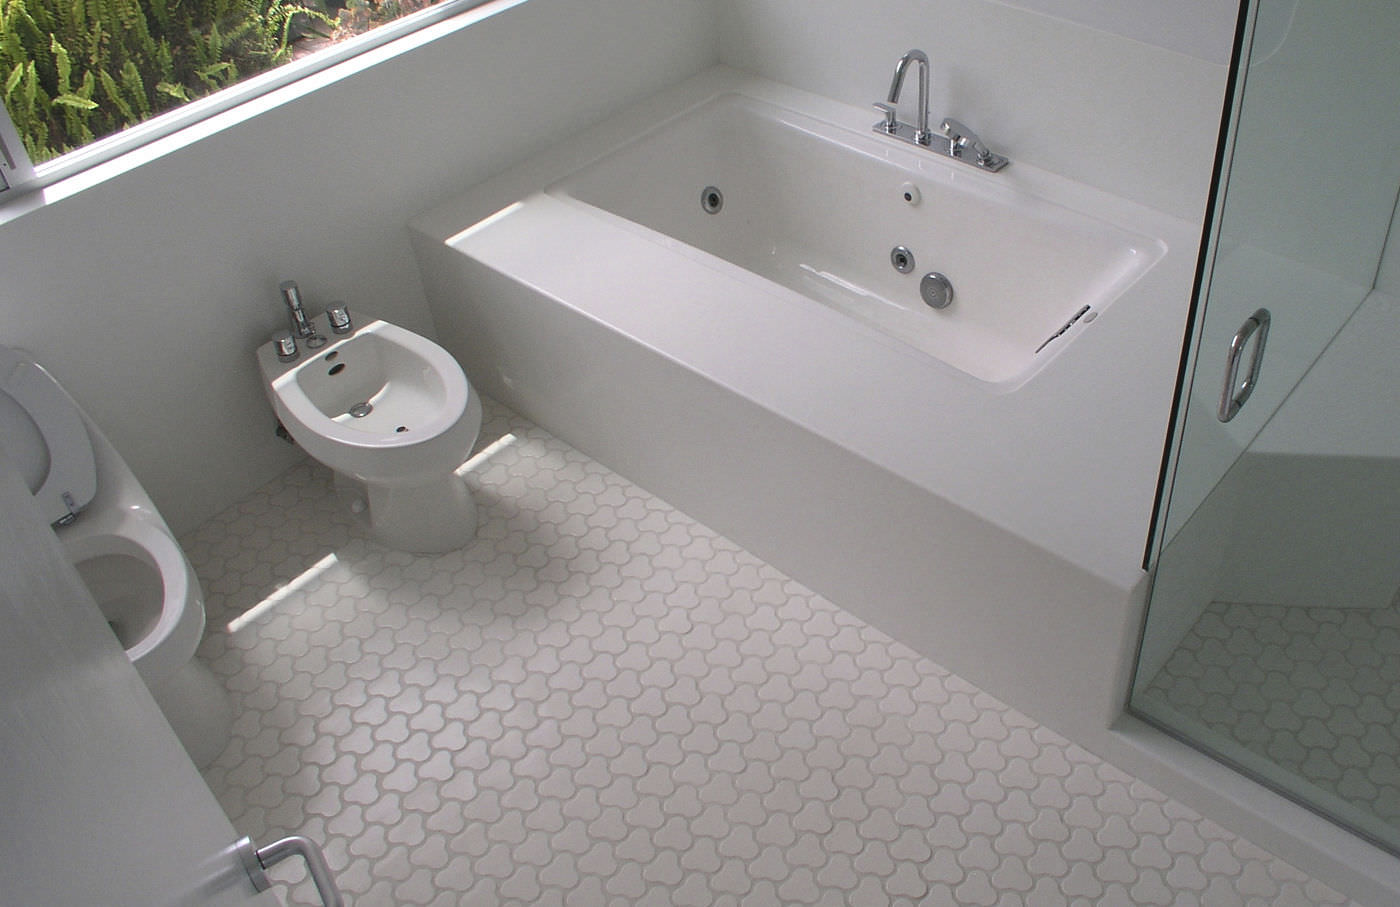 Indoor tile bathroom floor ceramic bom daniel ogassian indoor tile bathroom floor ceramic bom dailygadgetfo Images